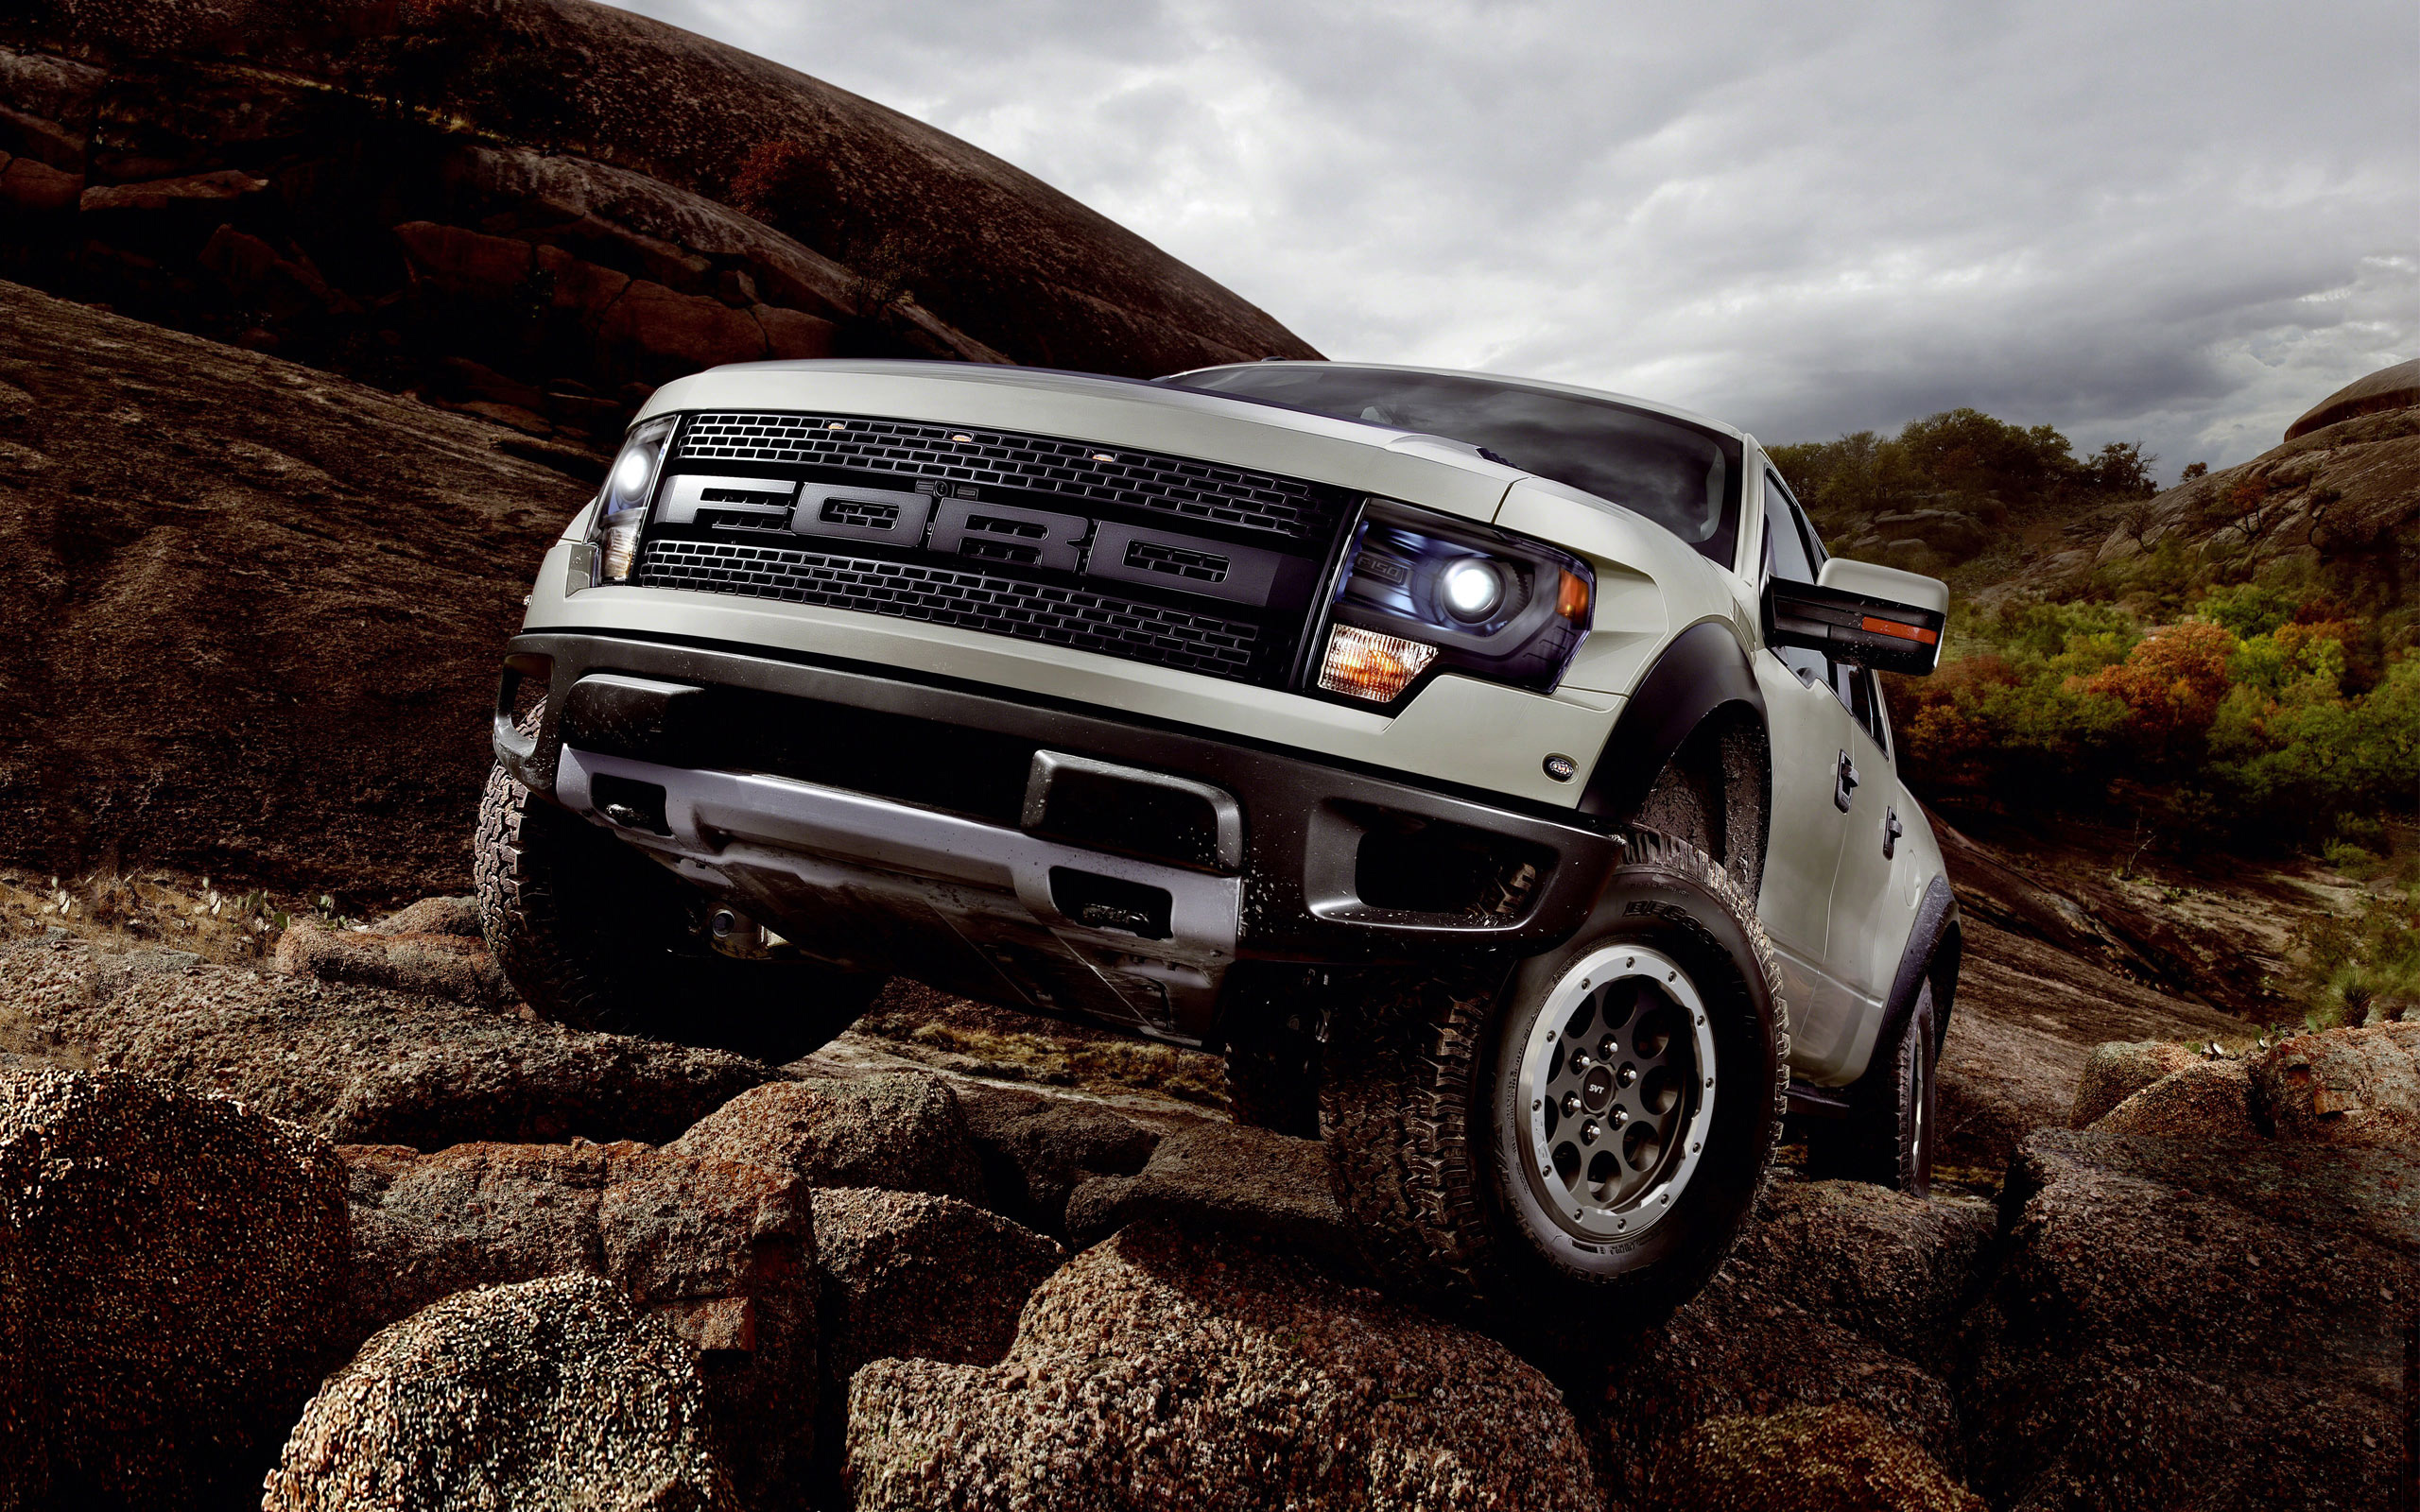 Ford F 150 SVT Raptor 2013 Wallpaper HD Car Wallpapers 2560x1600